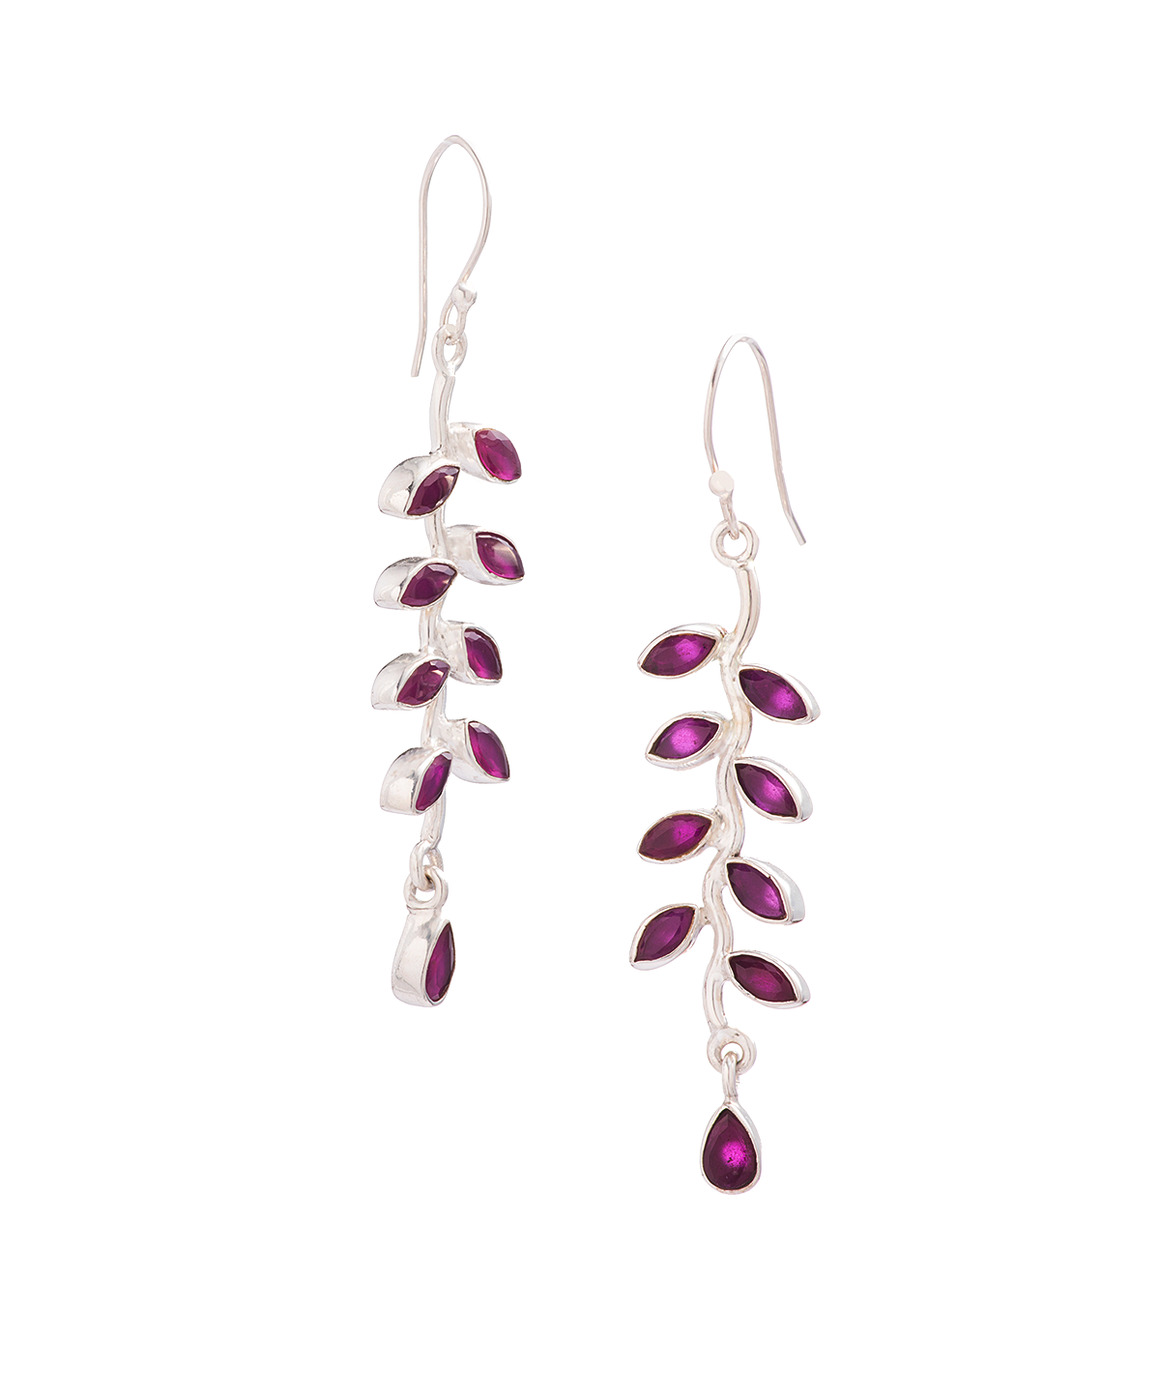 Amethyst Vine Leaf Drop Earrings in Sterling Silver